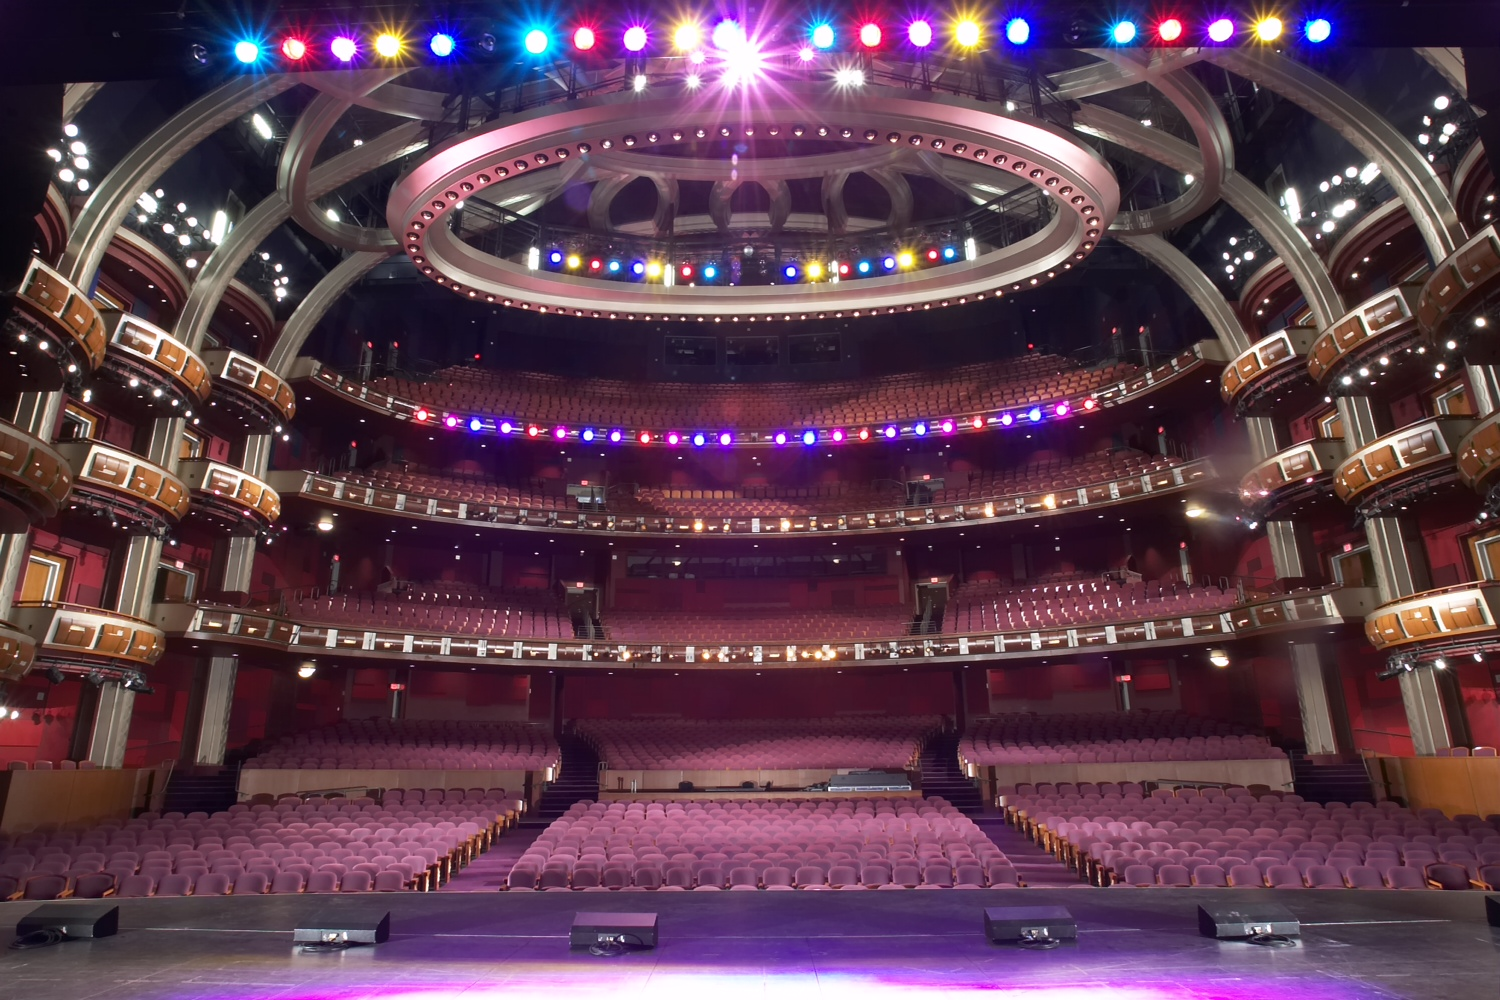 Dolby Theatre Arenanetwork